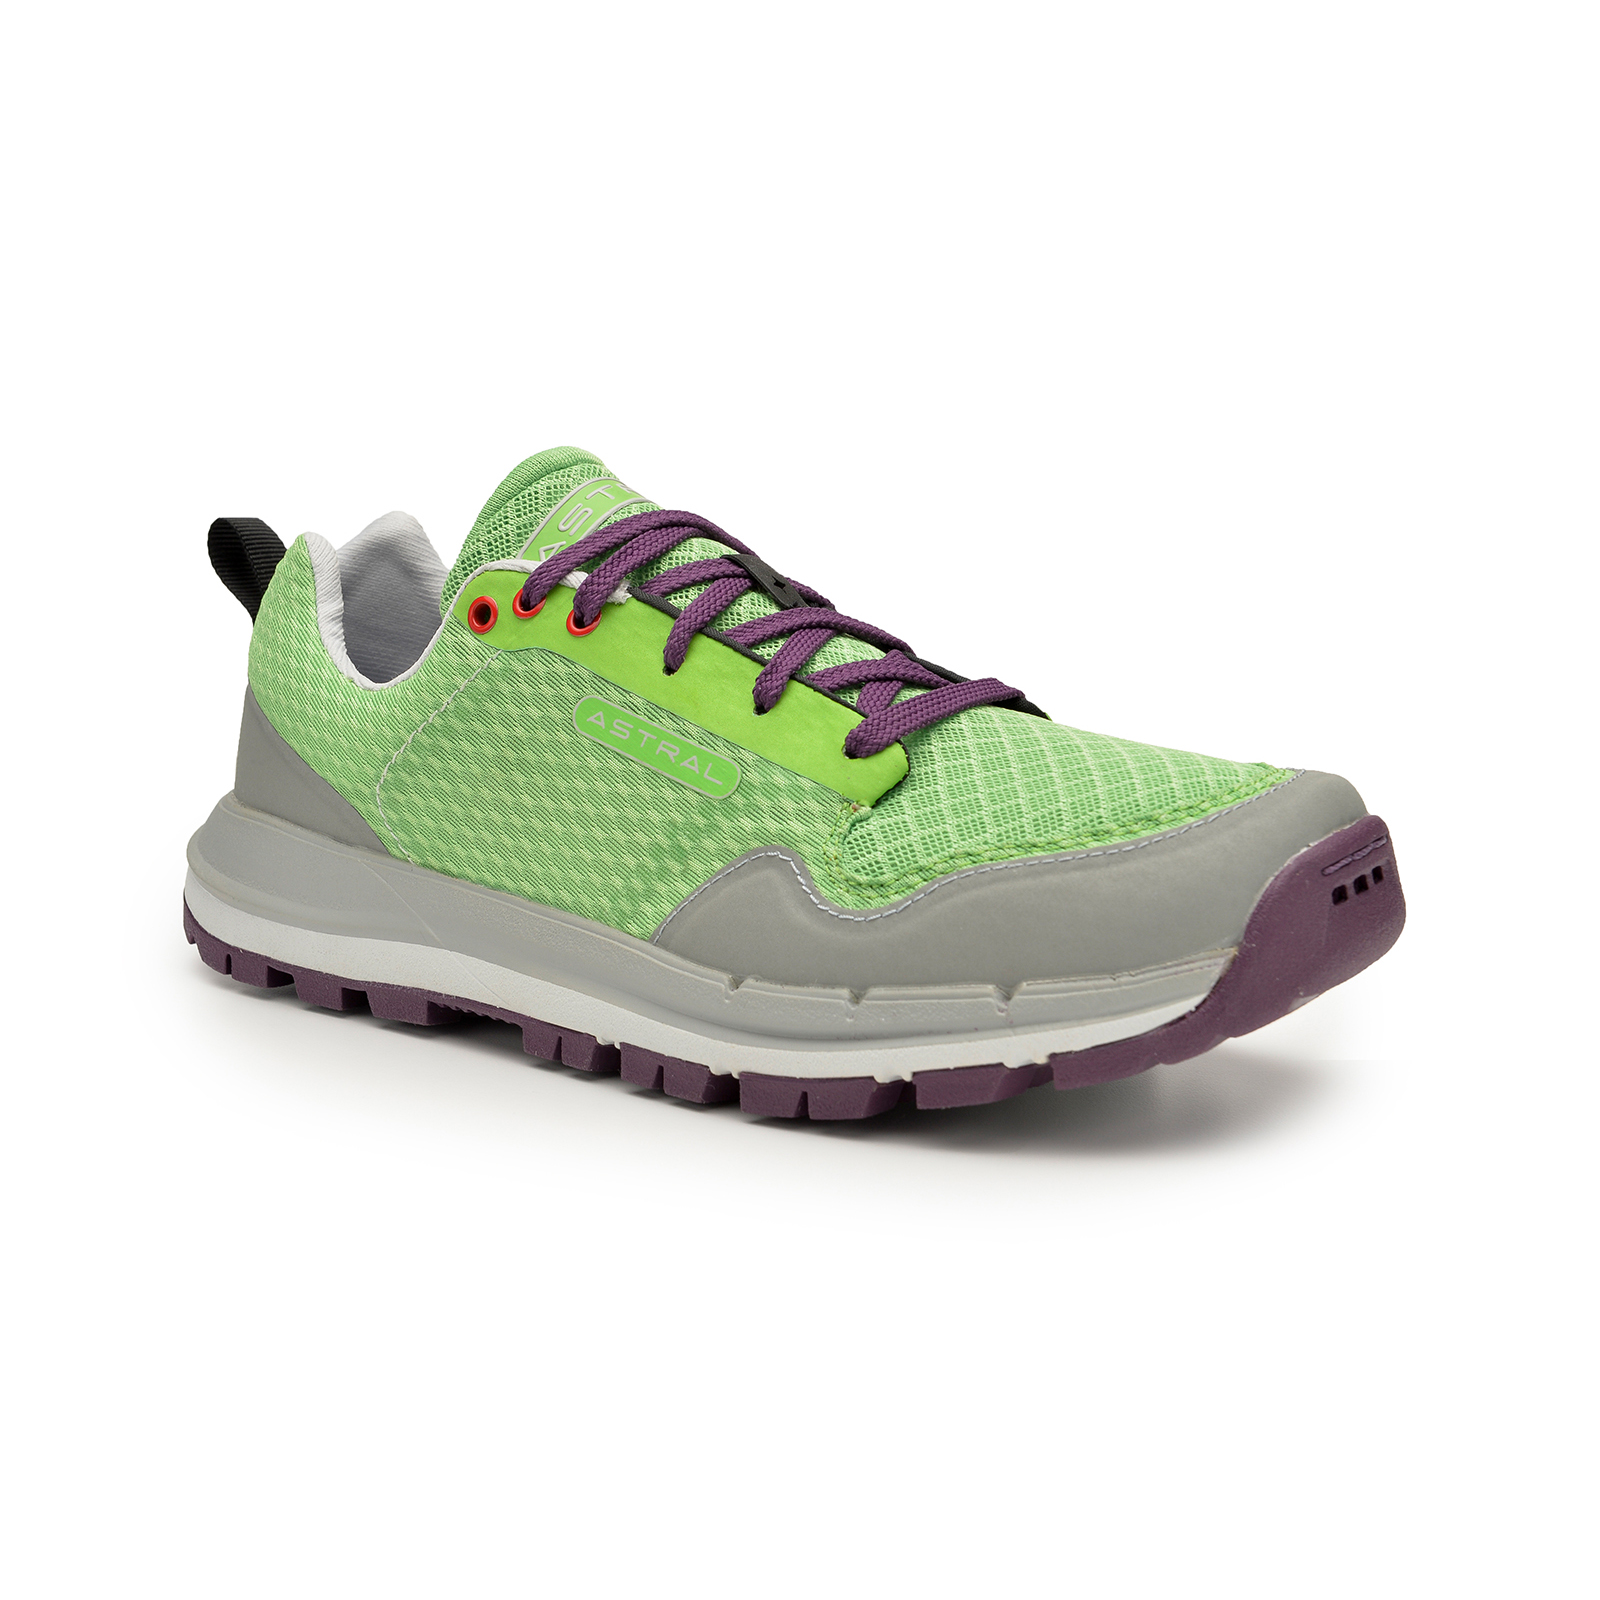 Astral TR1 Mesh Women's Water Shoe